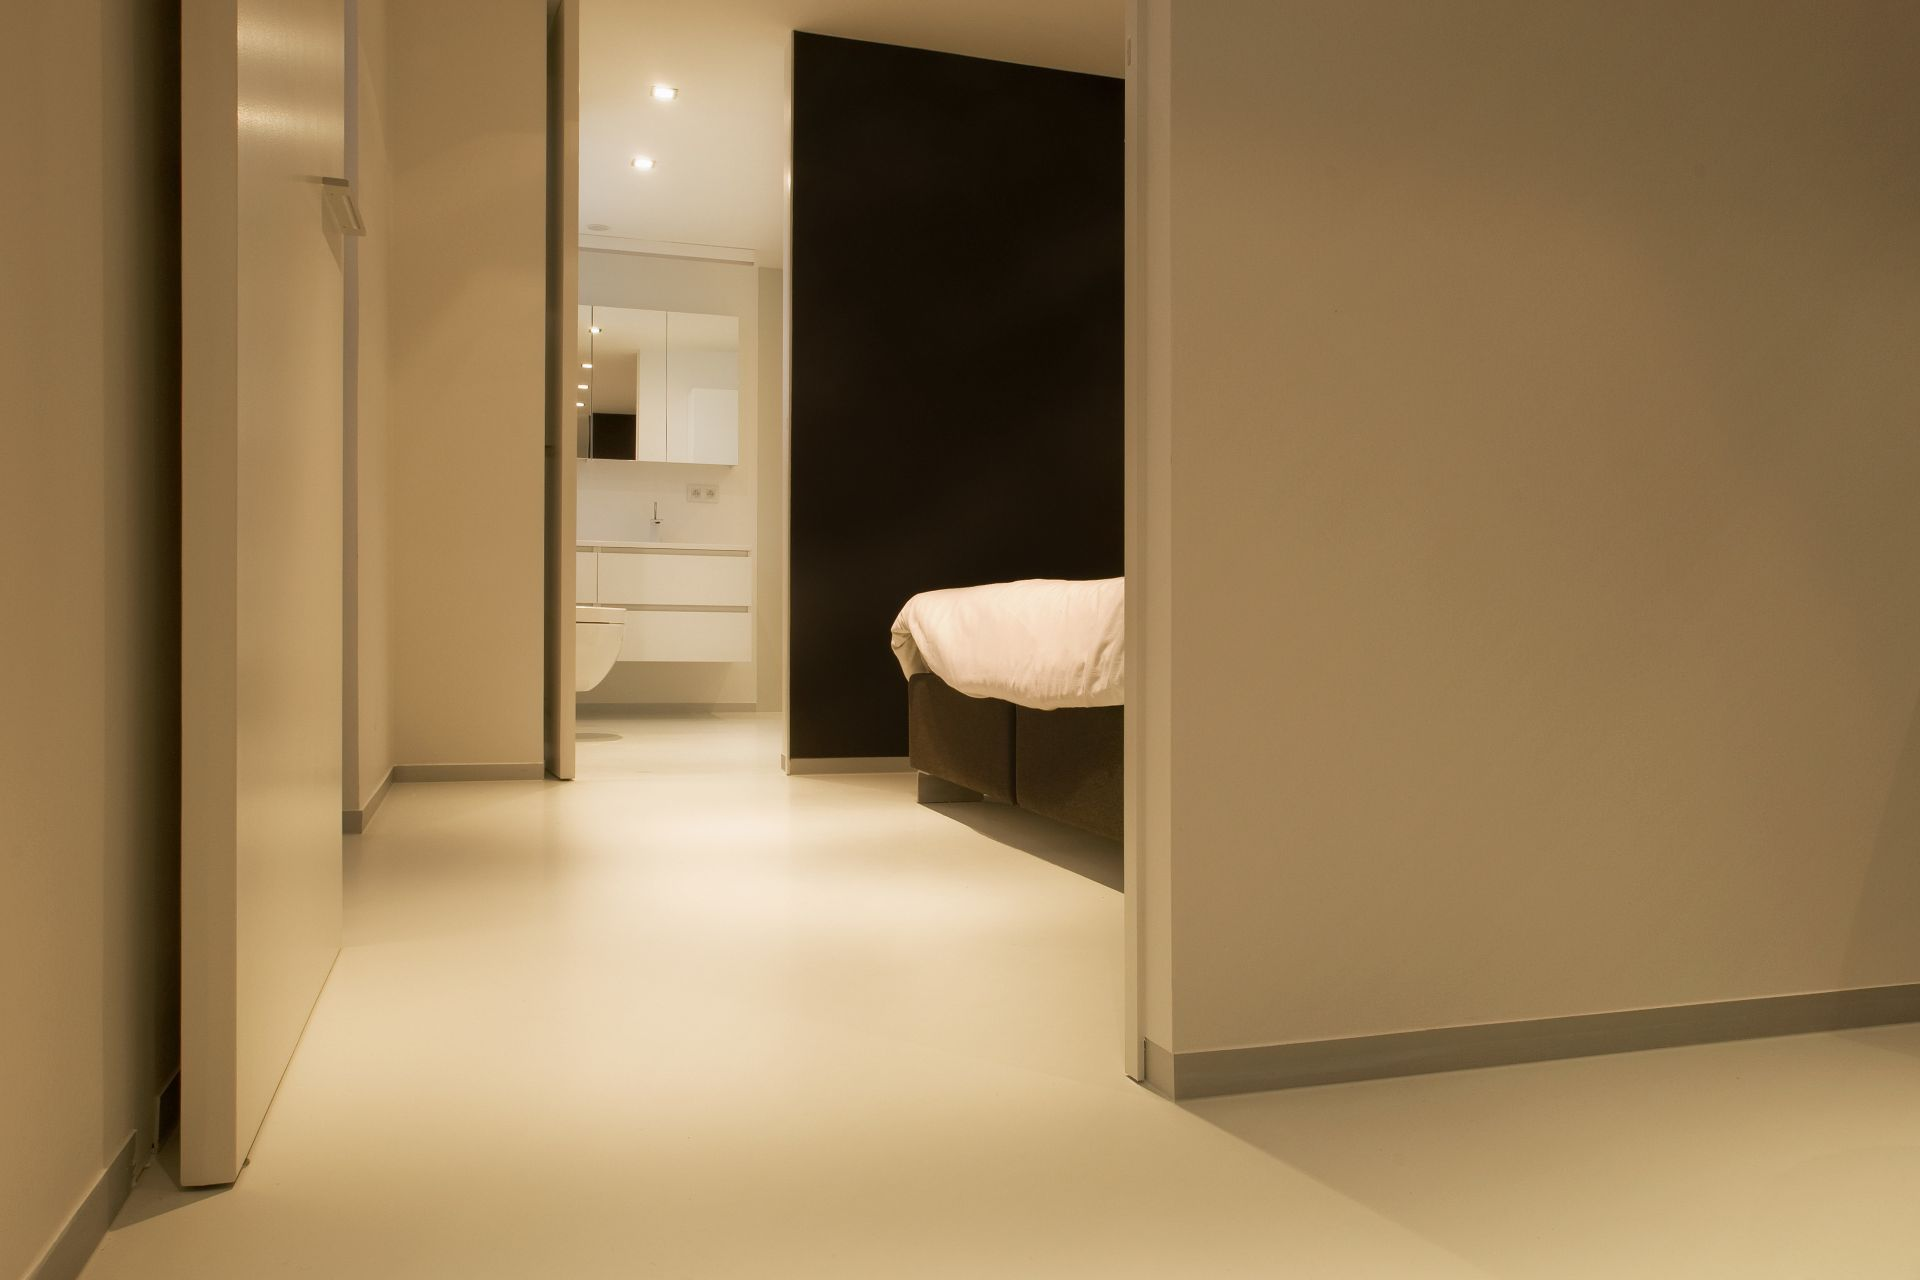 Sika ComfortFloor® beige floor in bedroom and bathroom in modern home